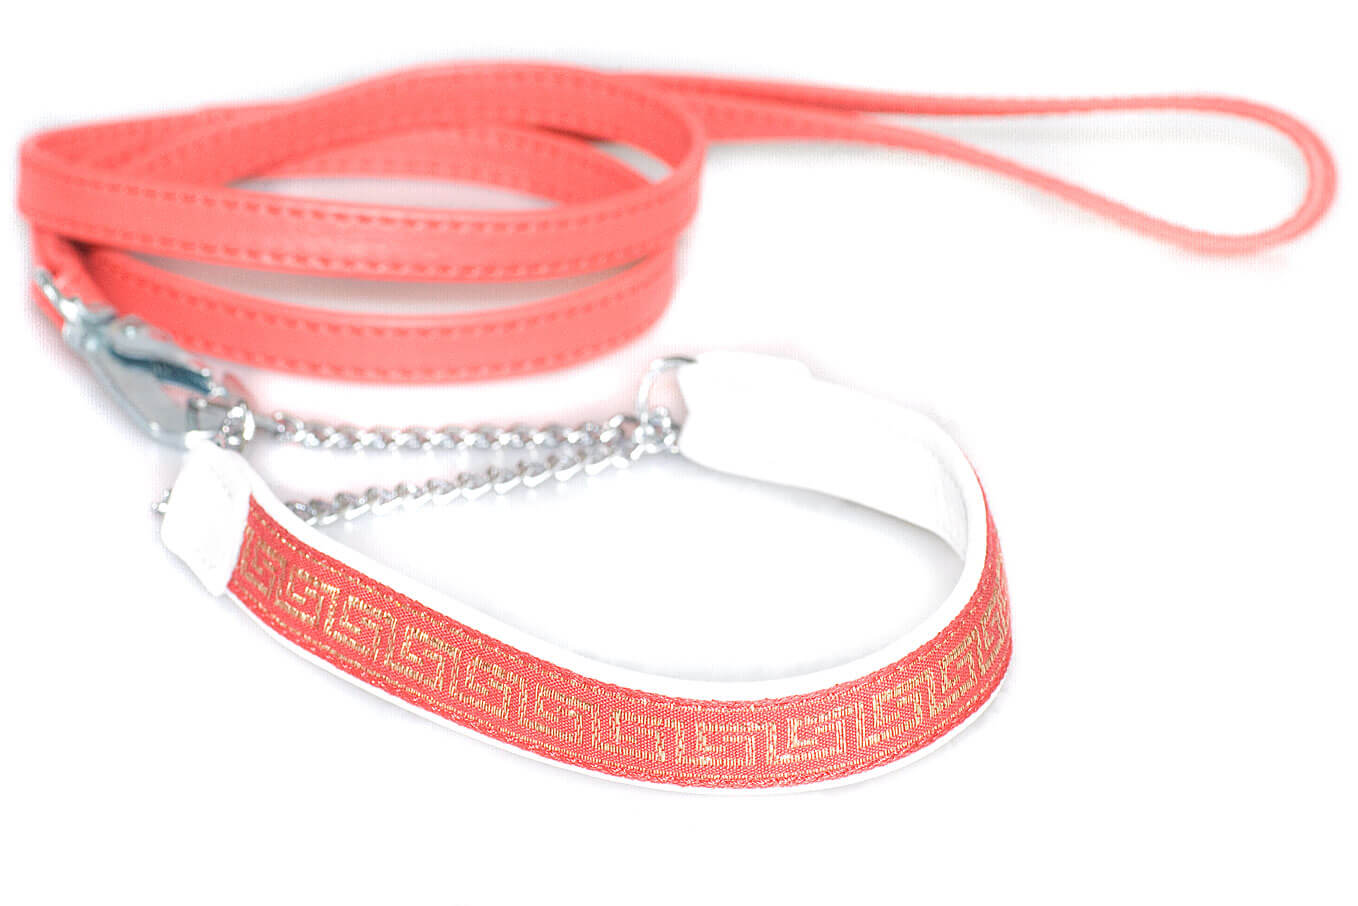 Red nappa leather stitched dog show lead with matching Martingale red leather and ribbon collar